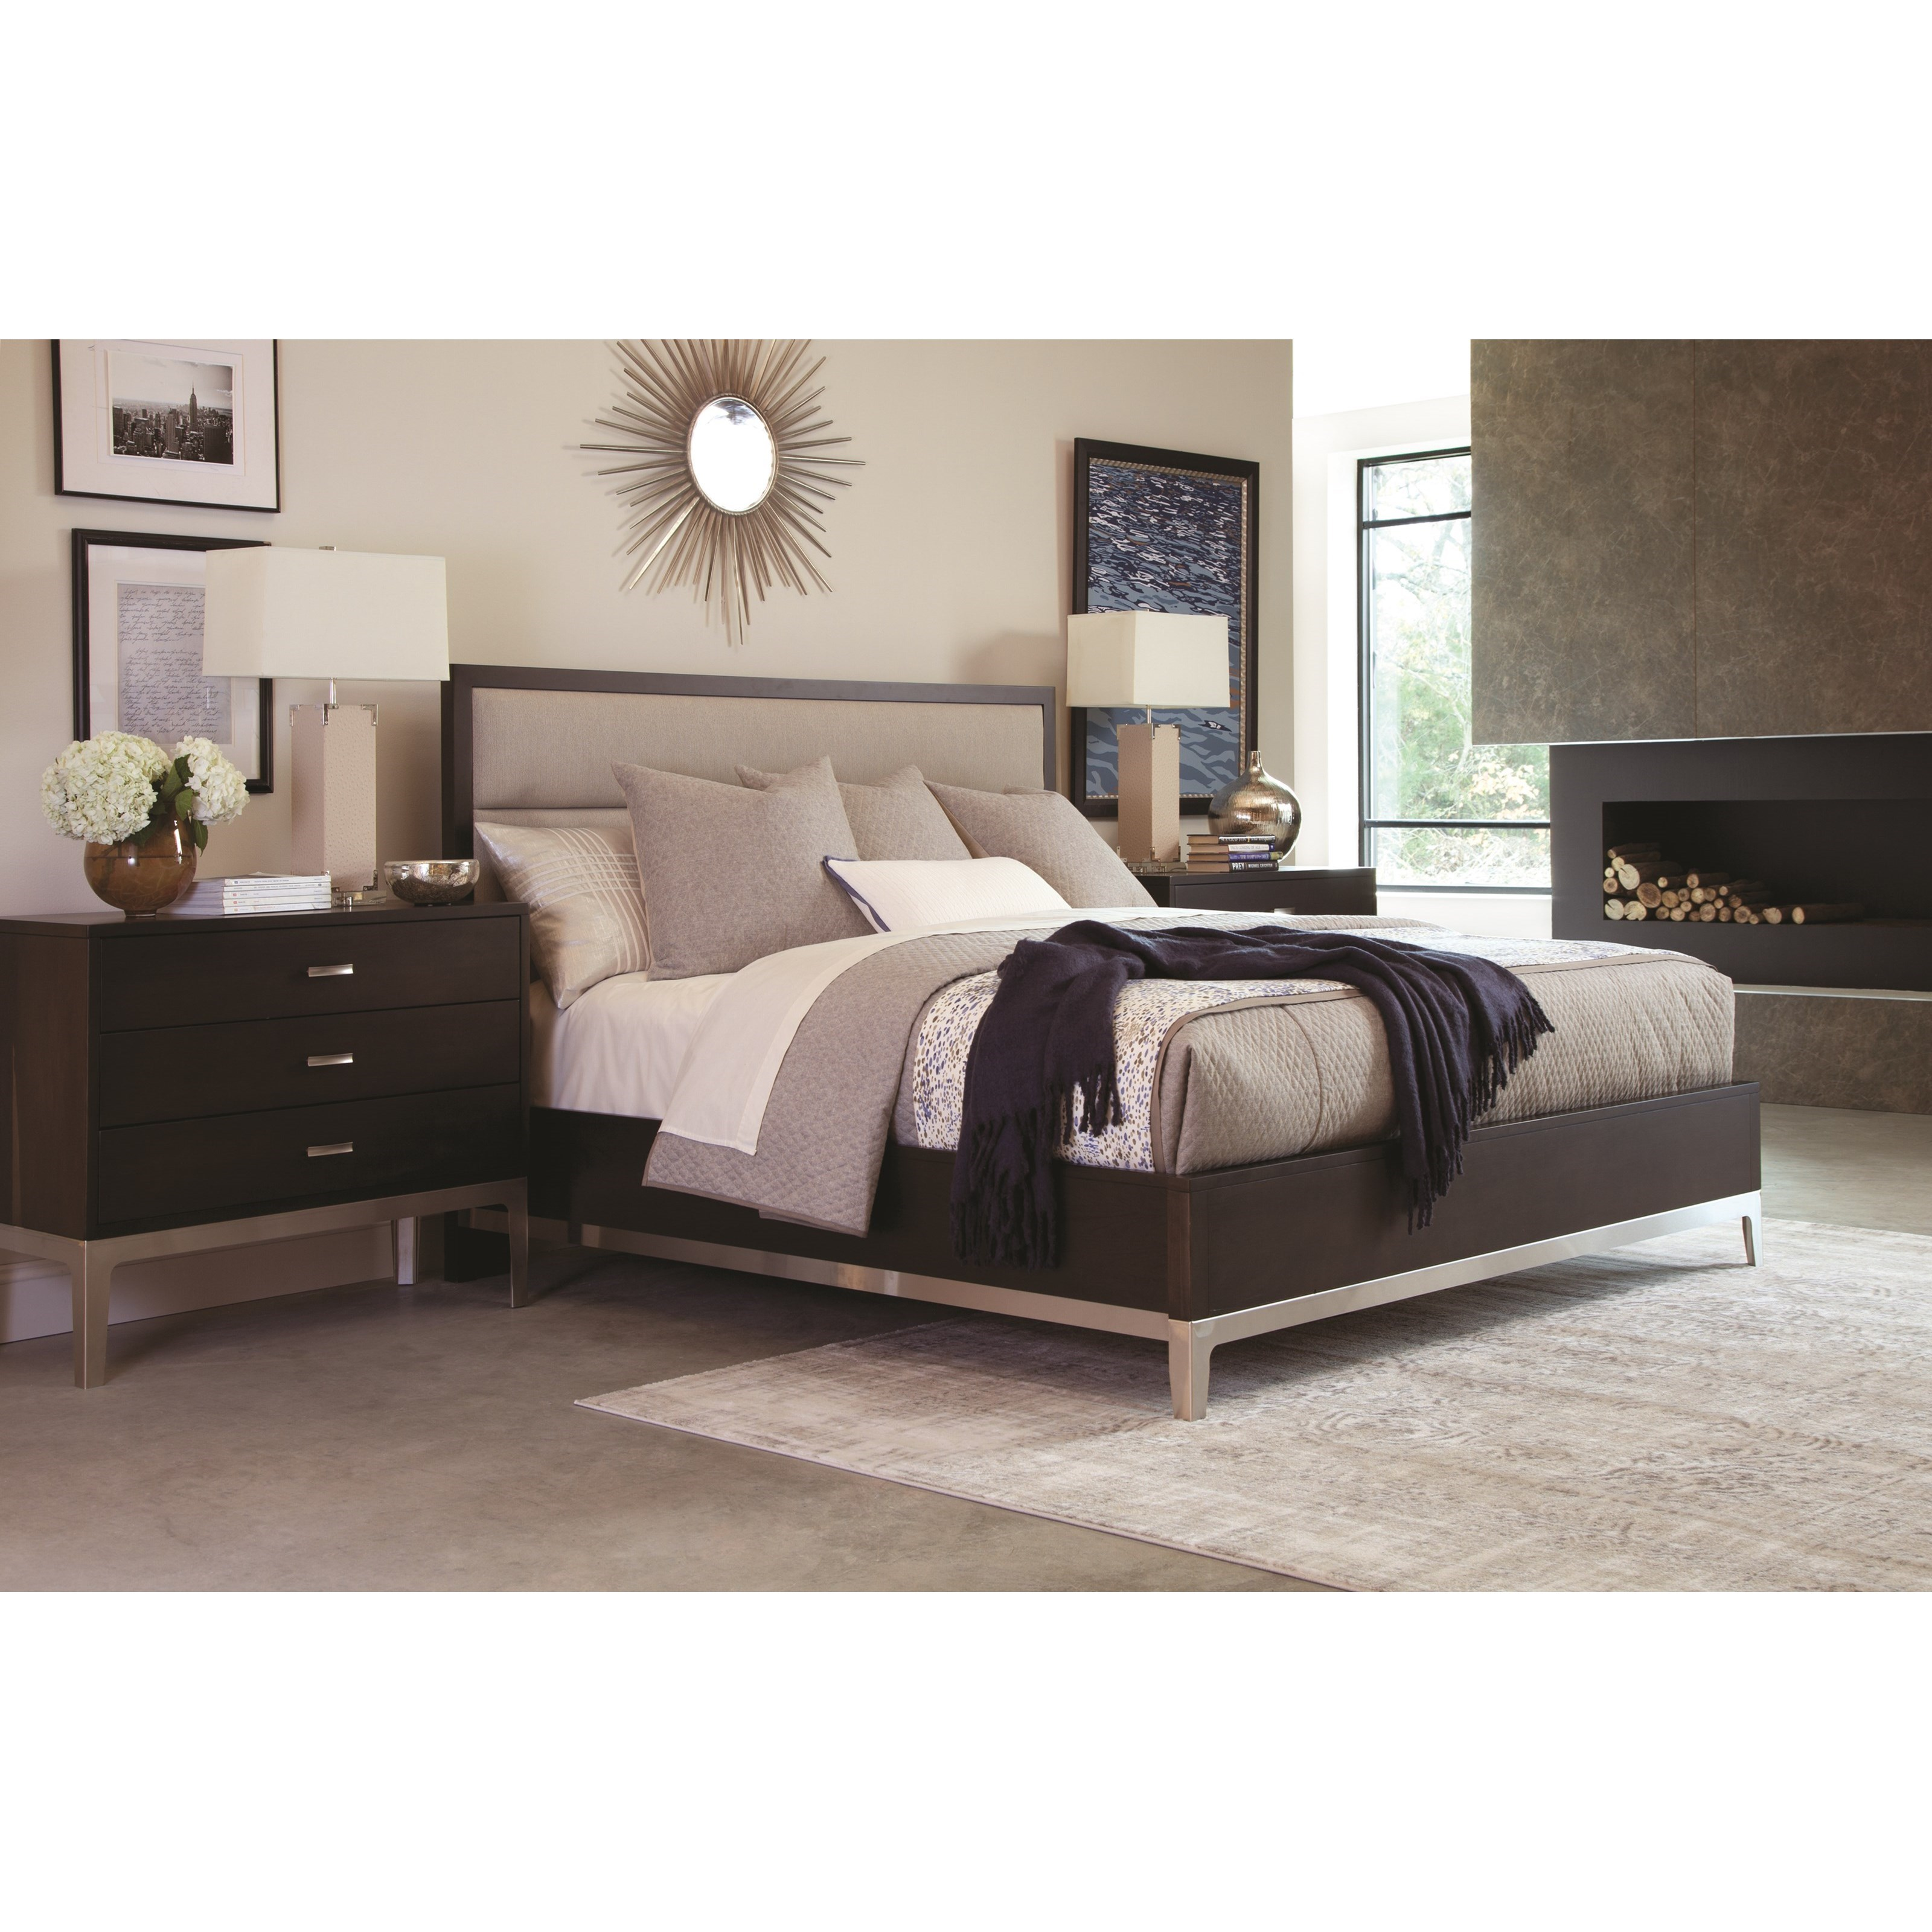 Defined Distinction Queen Bedroom Group by Durham at Stoney Creek Furniture